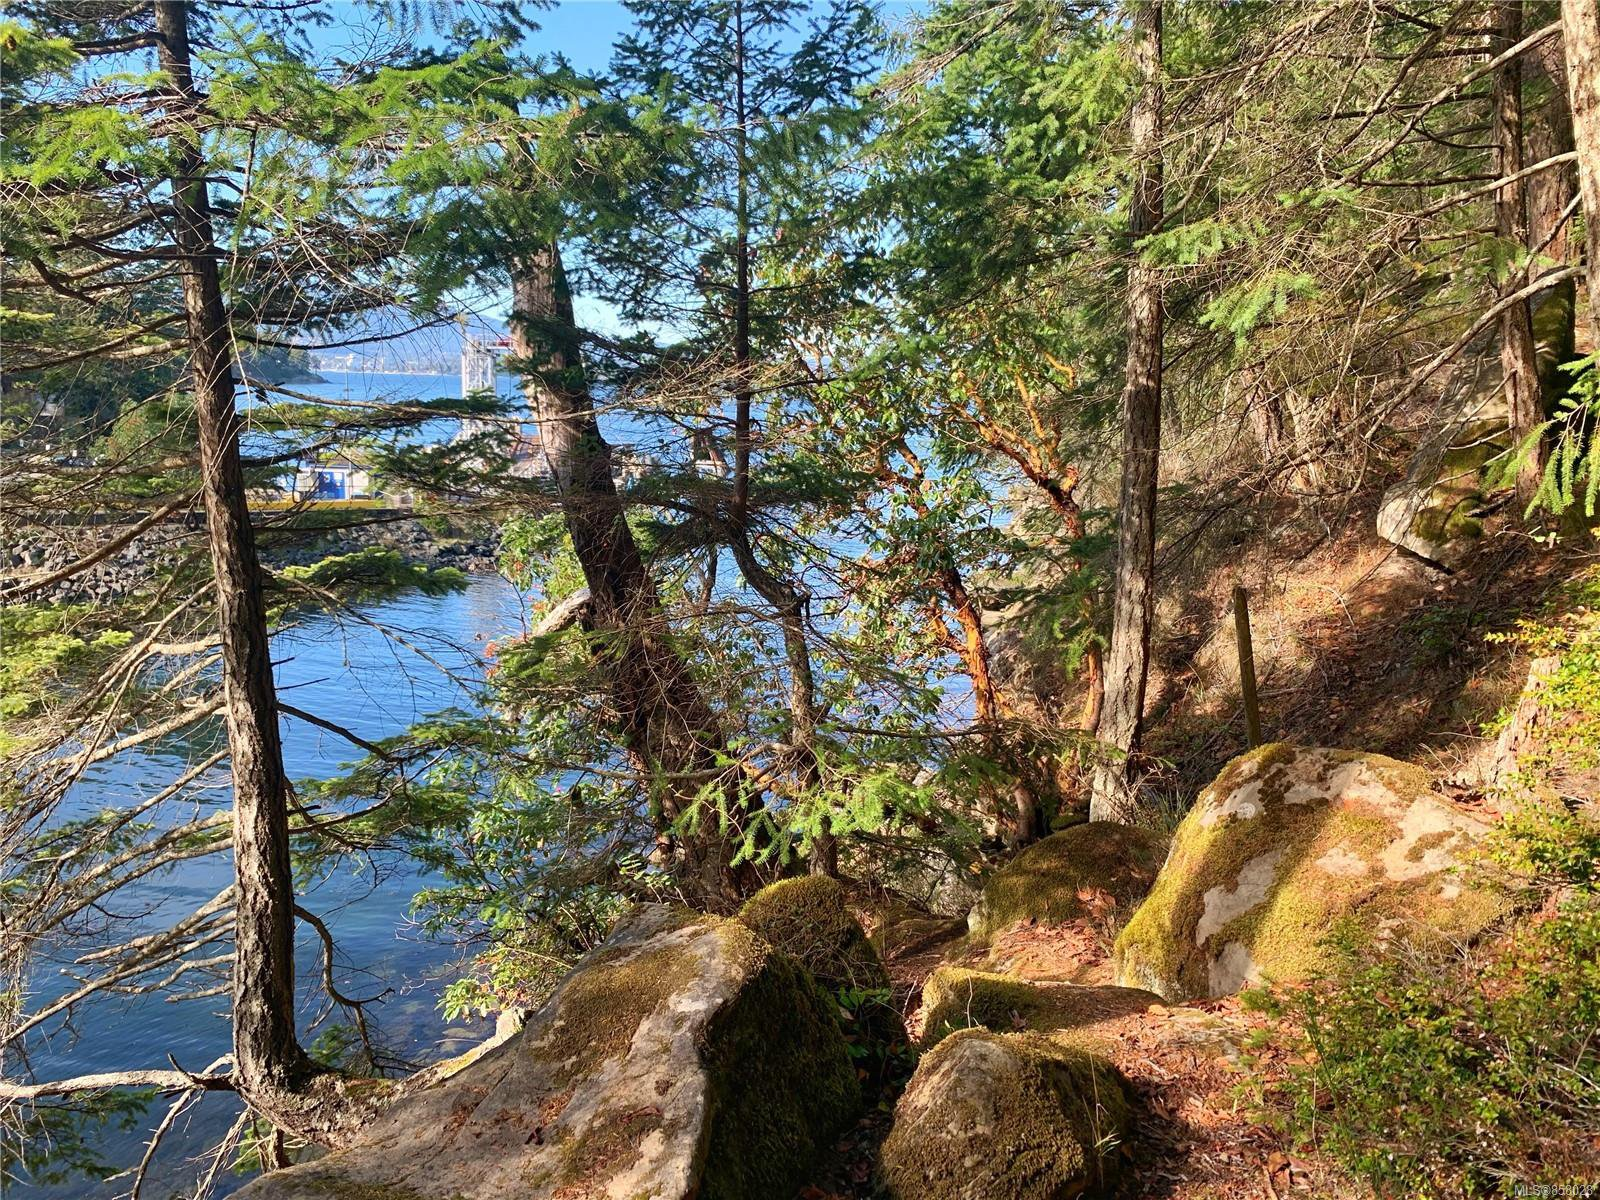 Main Photo: Lt 3 Taylor Bay Rd in : Isl Gabriola Island Land for sale (Islands)  : MLS®# 858028